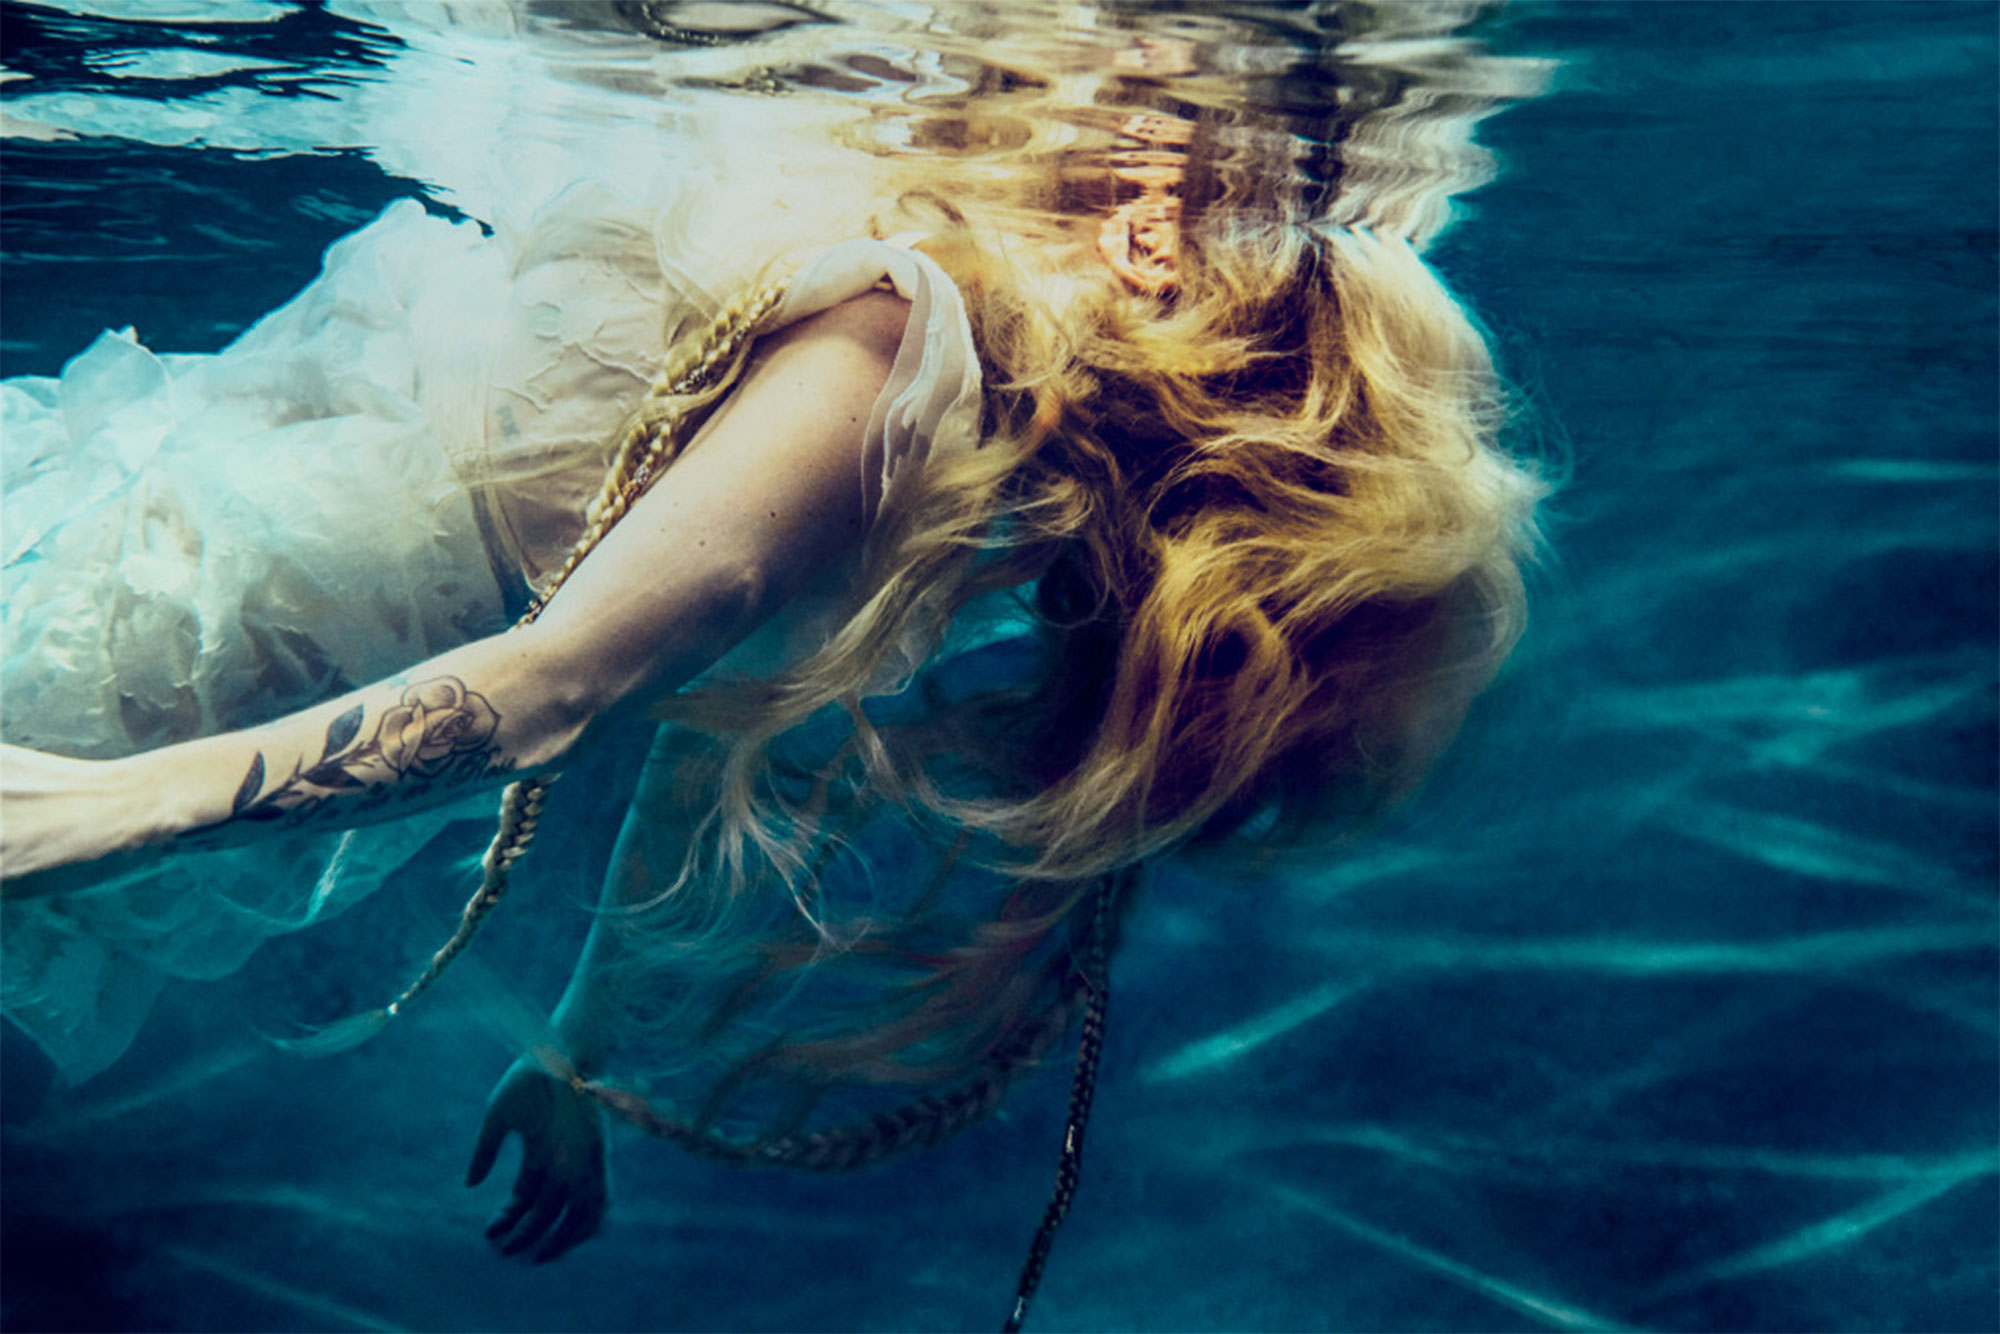 head above water avril lavigne  Avril Lavigne's 'Head Above Water' Is a Product of Her Battle with ...